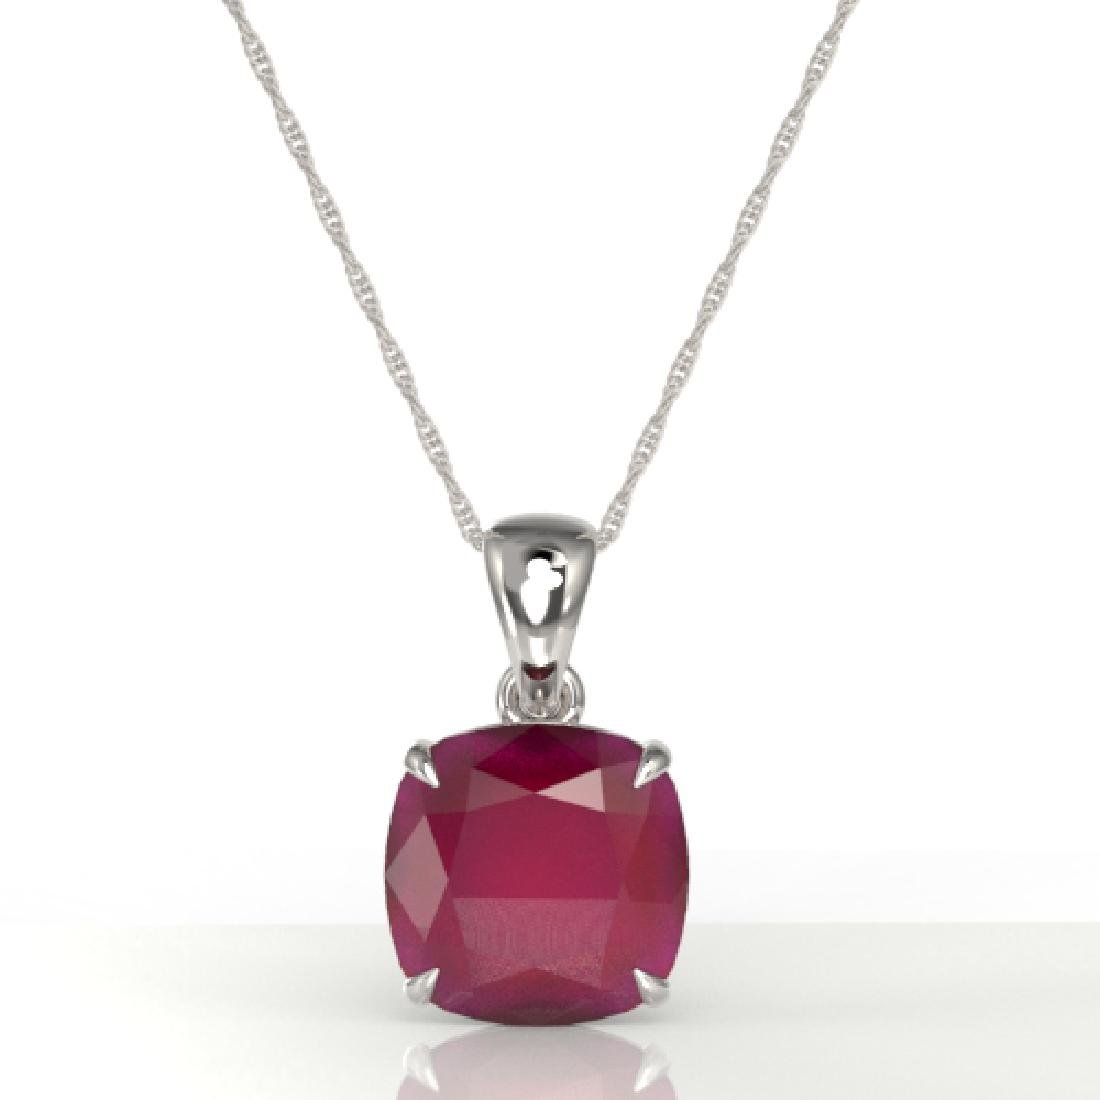 6 Cushion Cut Ruby Solitaire necklace 18K White Gold - 2